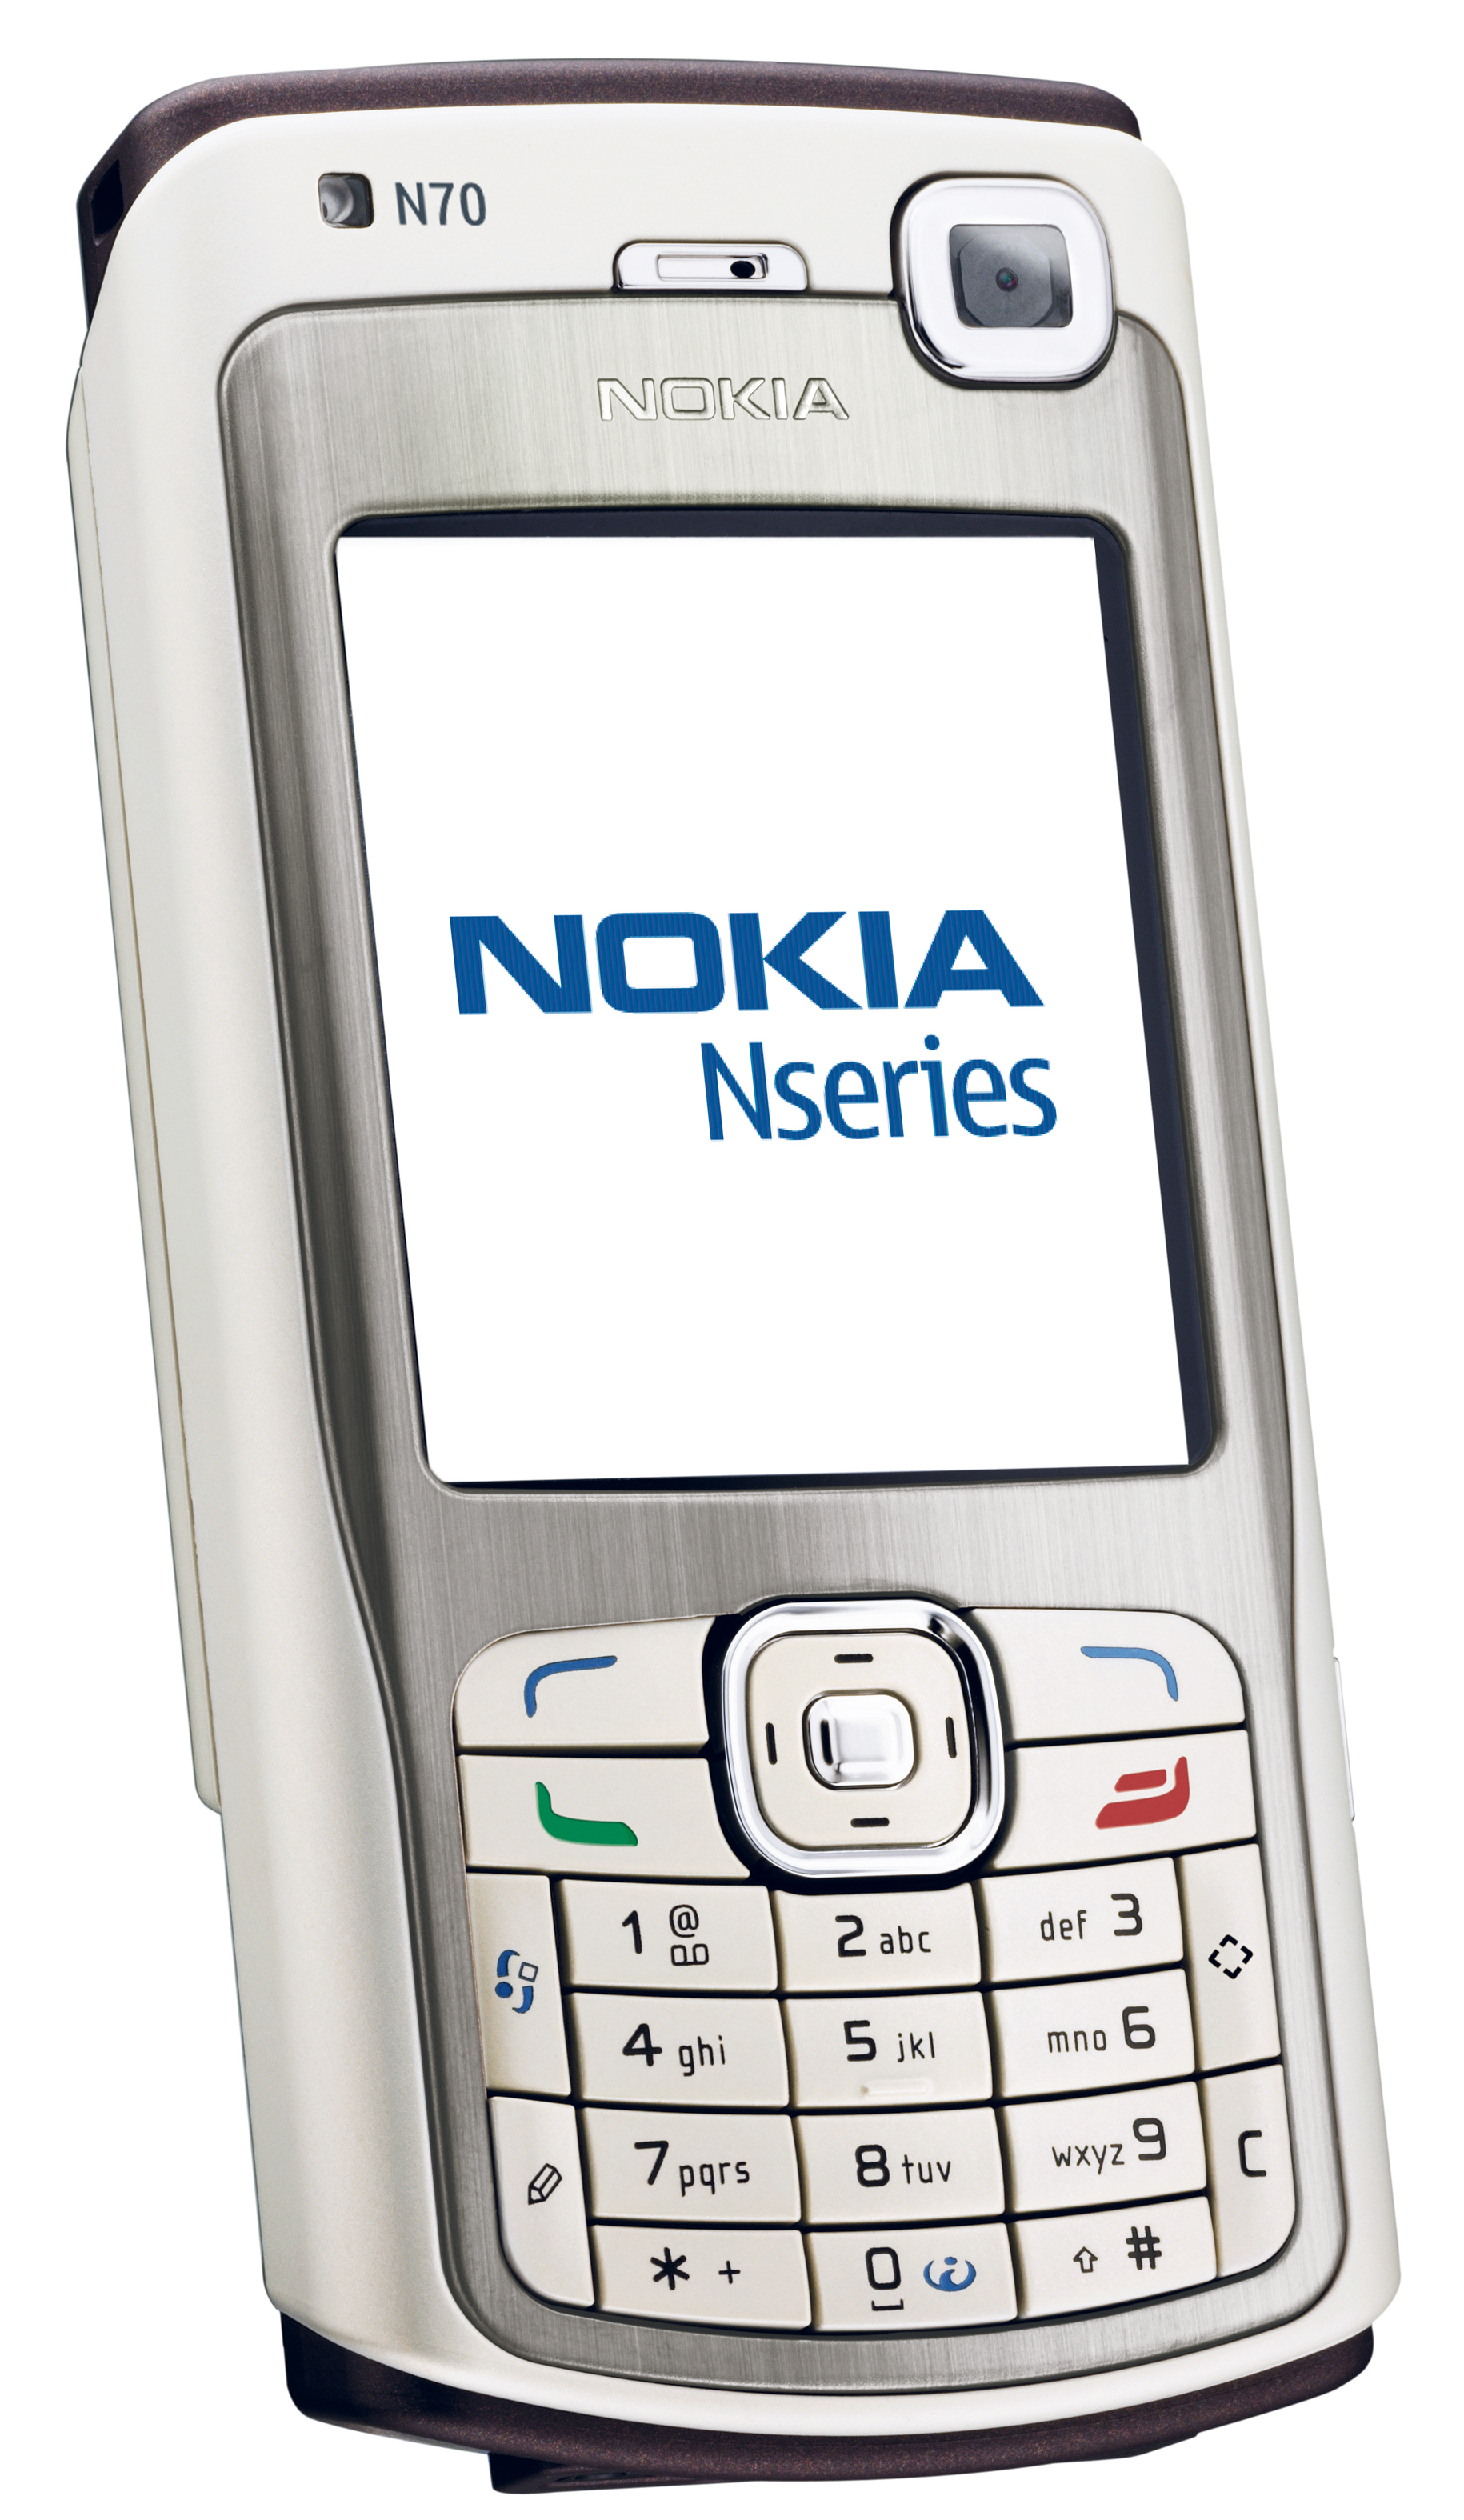 Nokia N70 | Nokia Wiki | FANDOM powered by Wikia